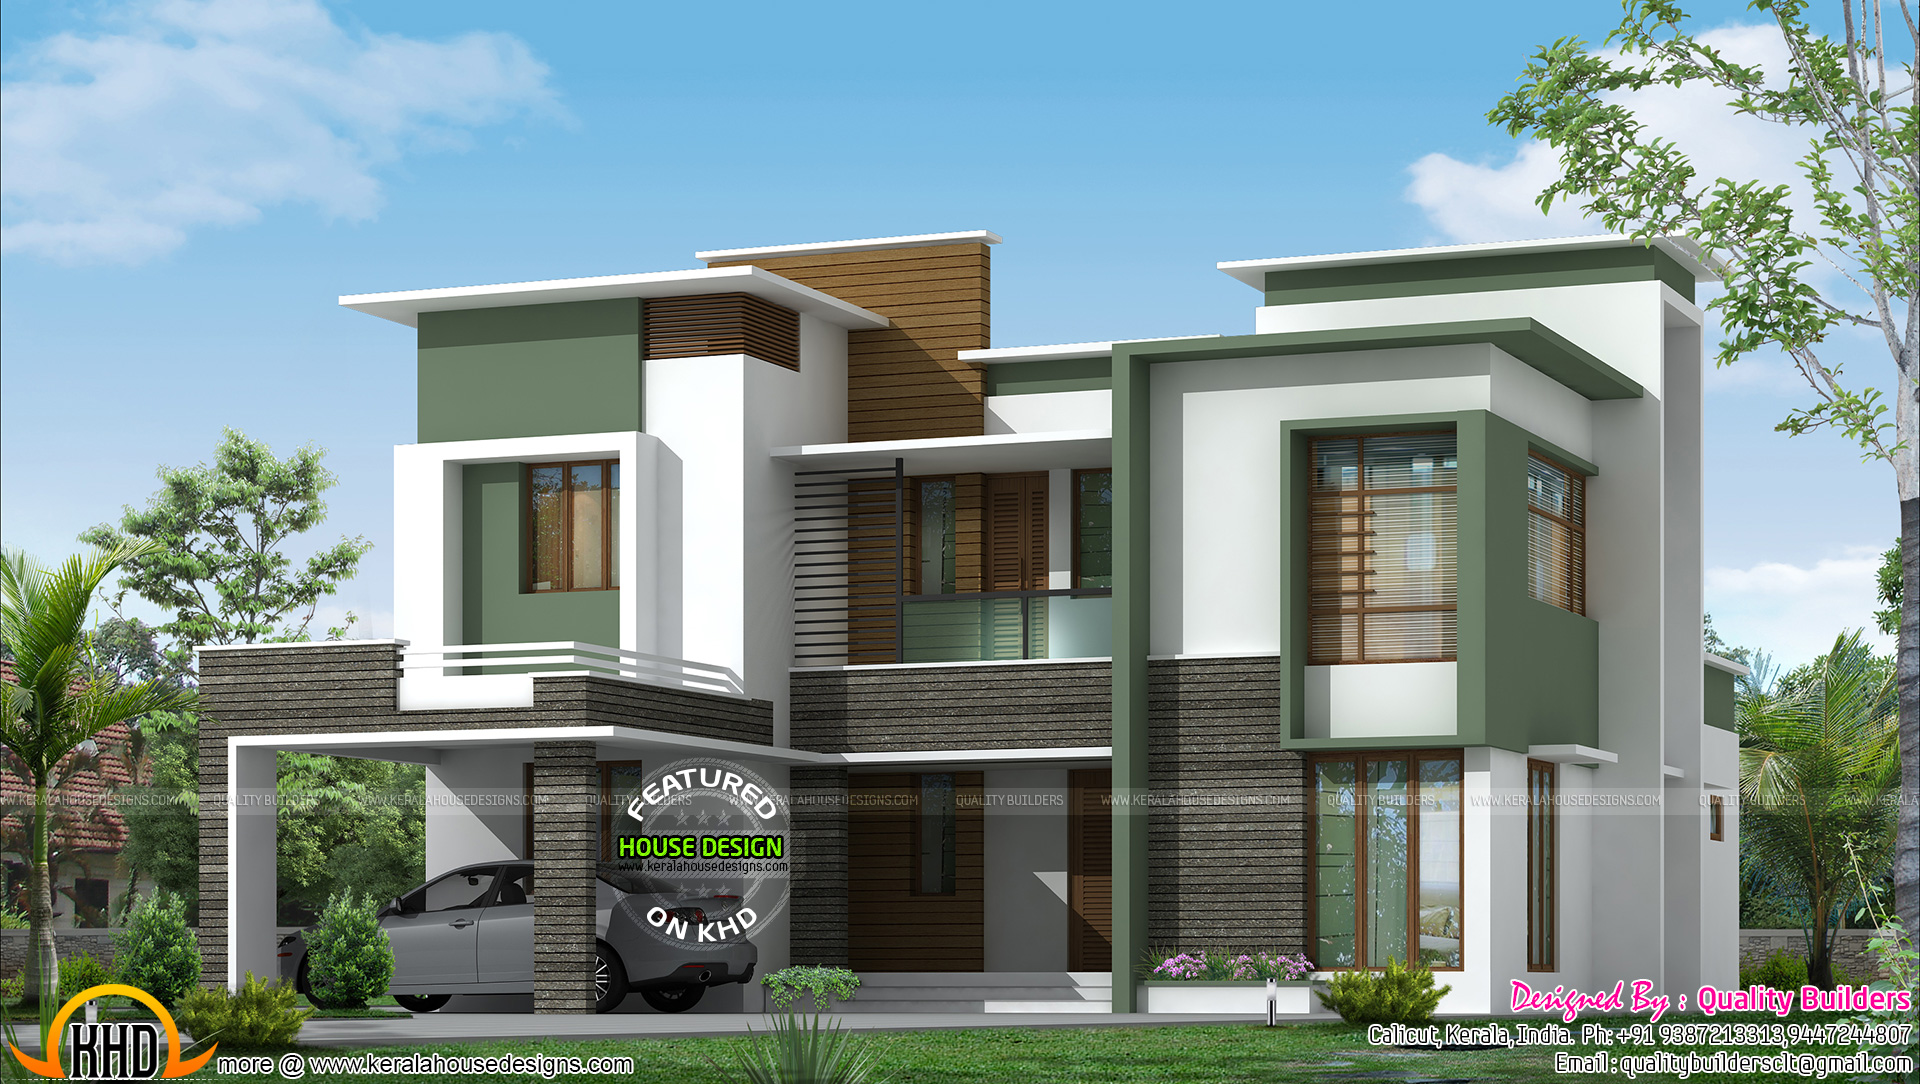 2806 sq ft flat roof contemporary kerala home design and for Kerala home design flat roof elevation